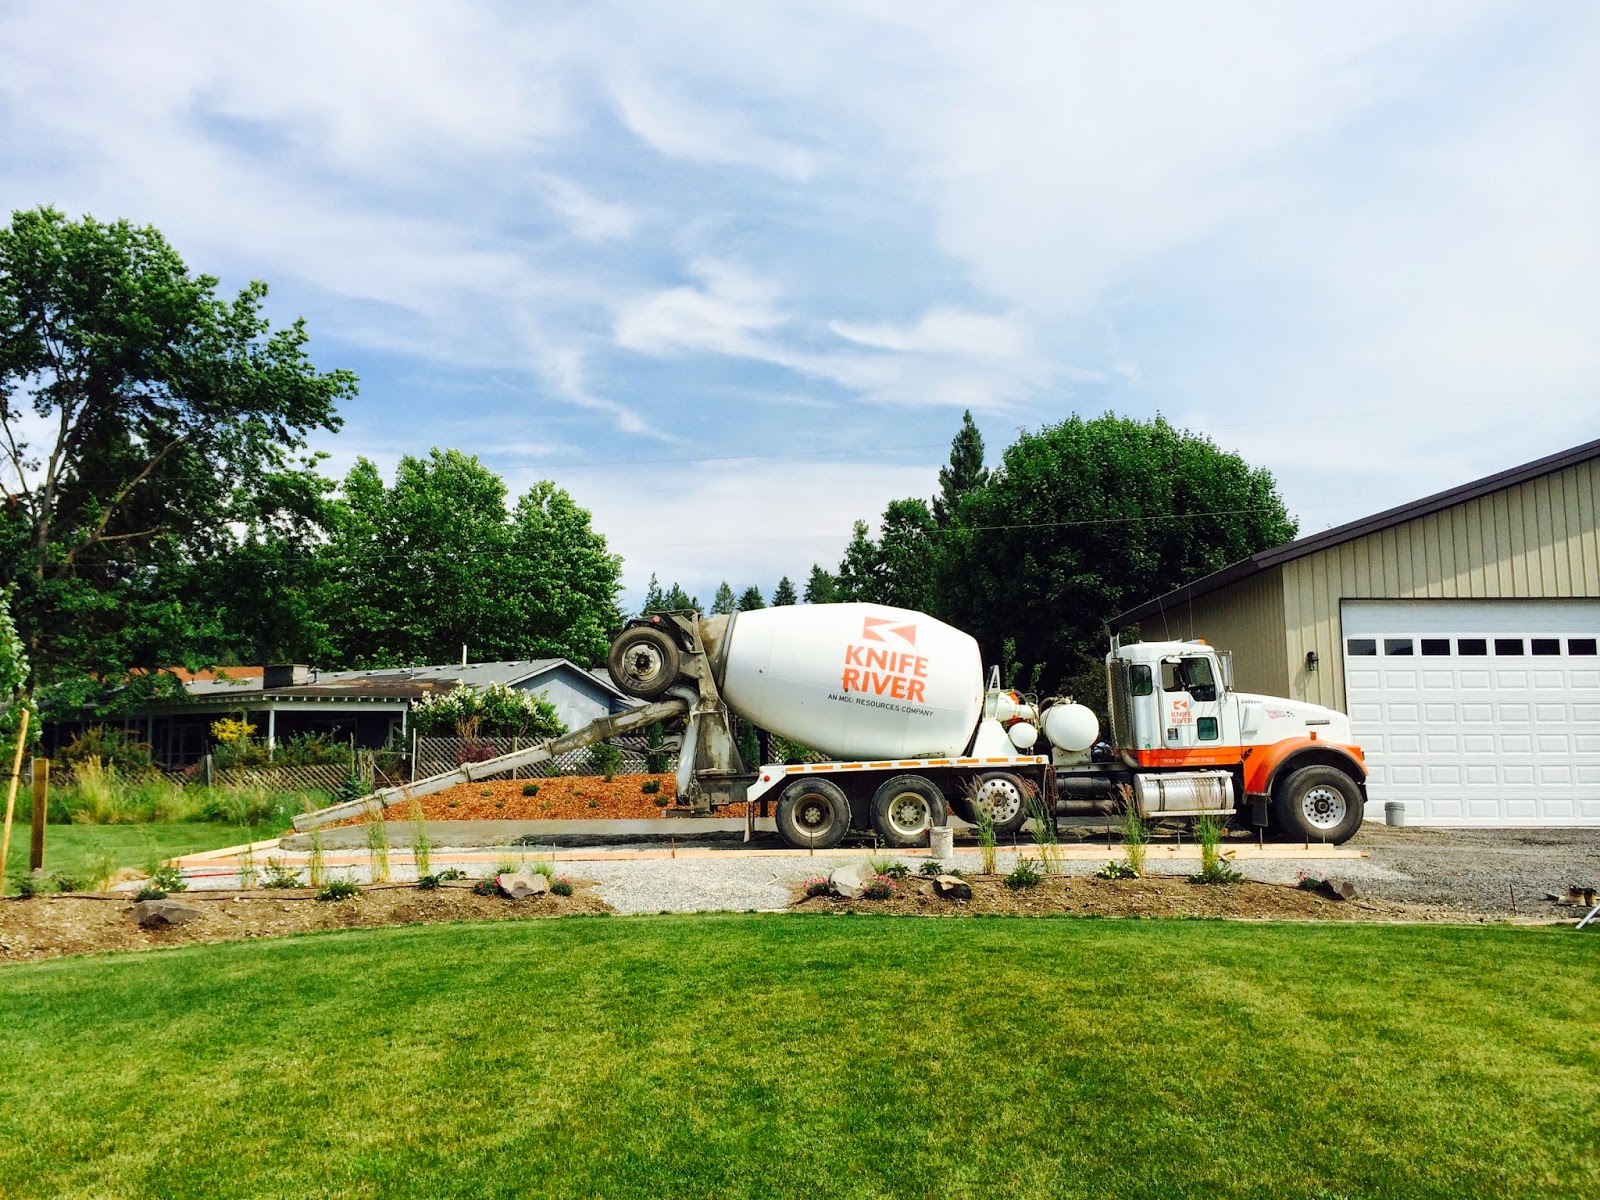 creative juices decor update on backyard home sports court